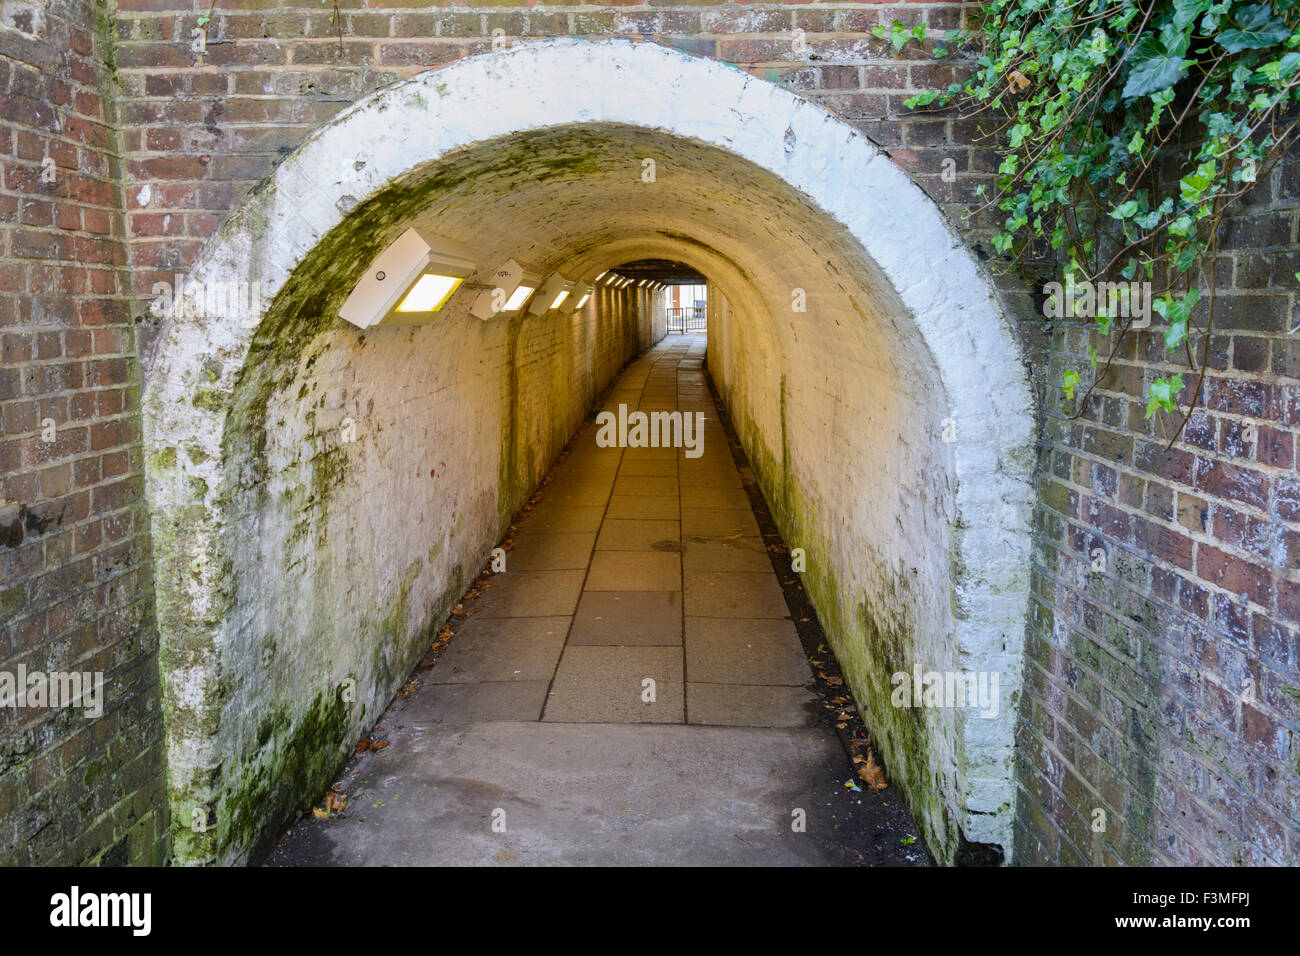 Ivy Arch pedestrian tunnel underneath a railway in Worthing, West Sussex, England, UK. - Stock Image